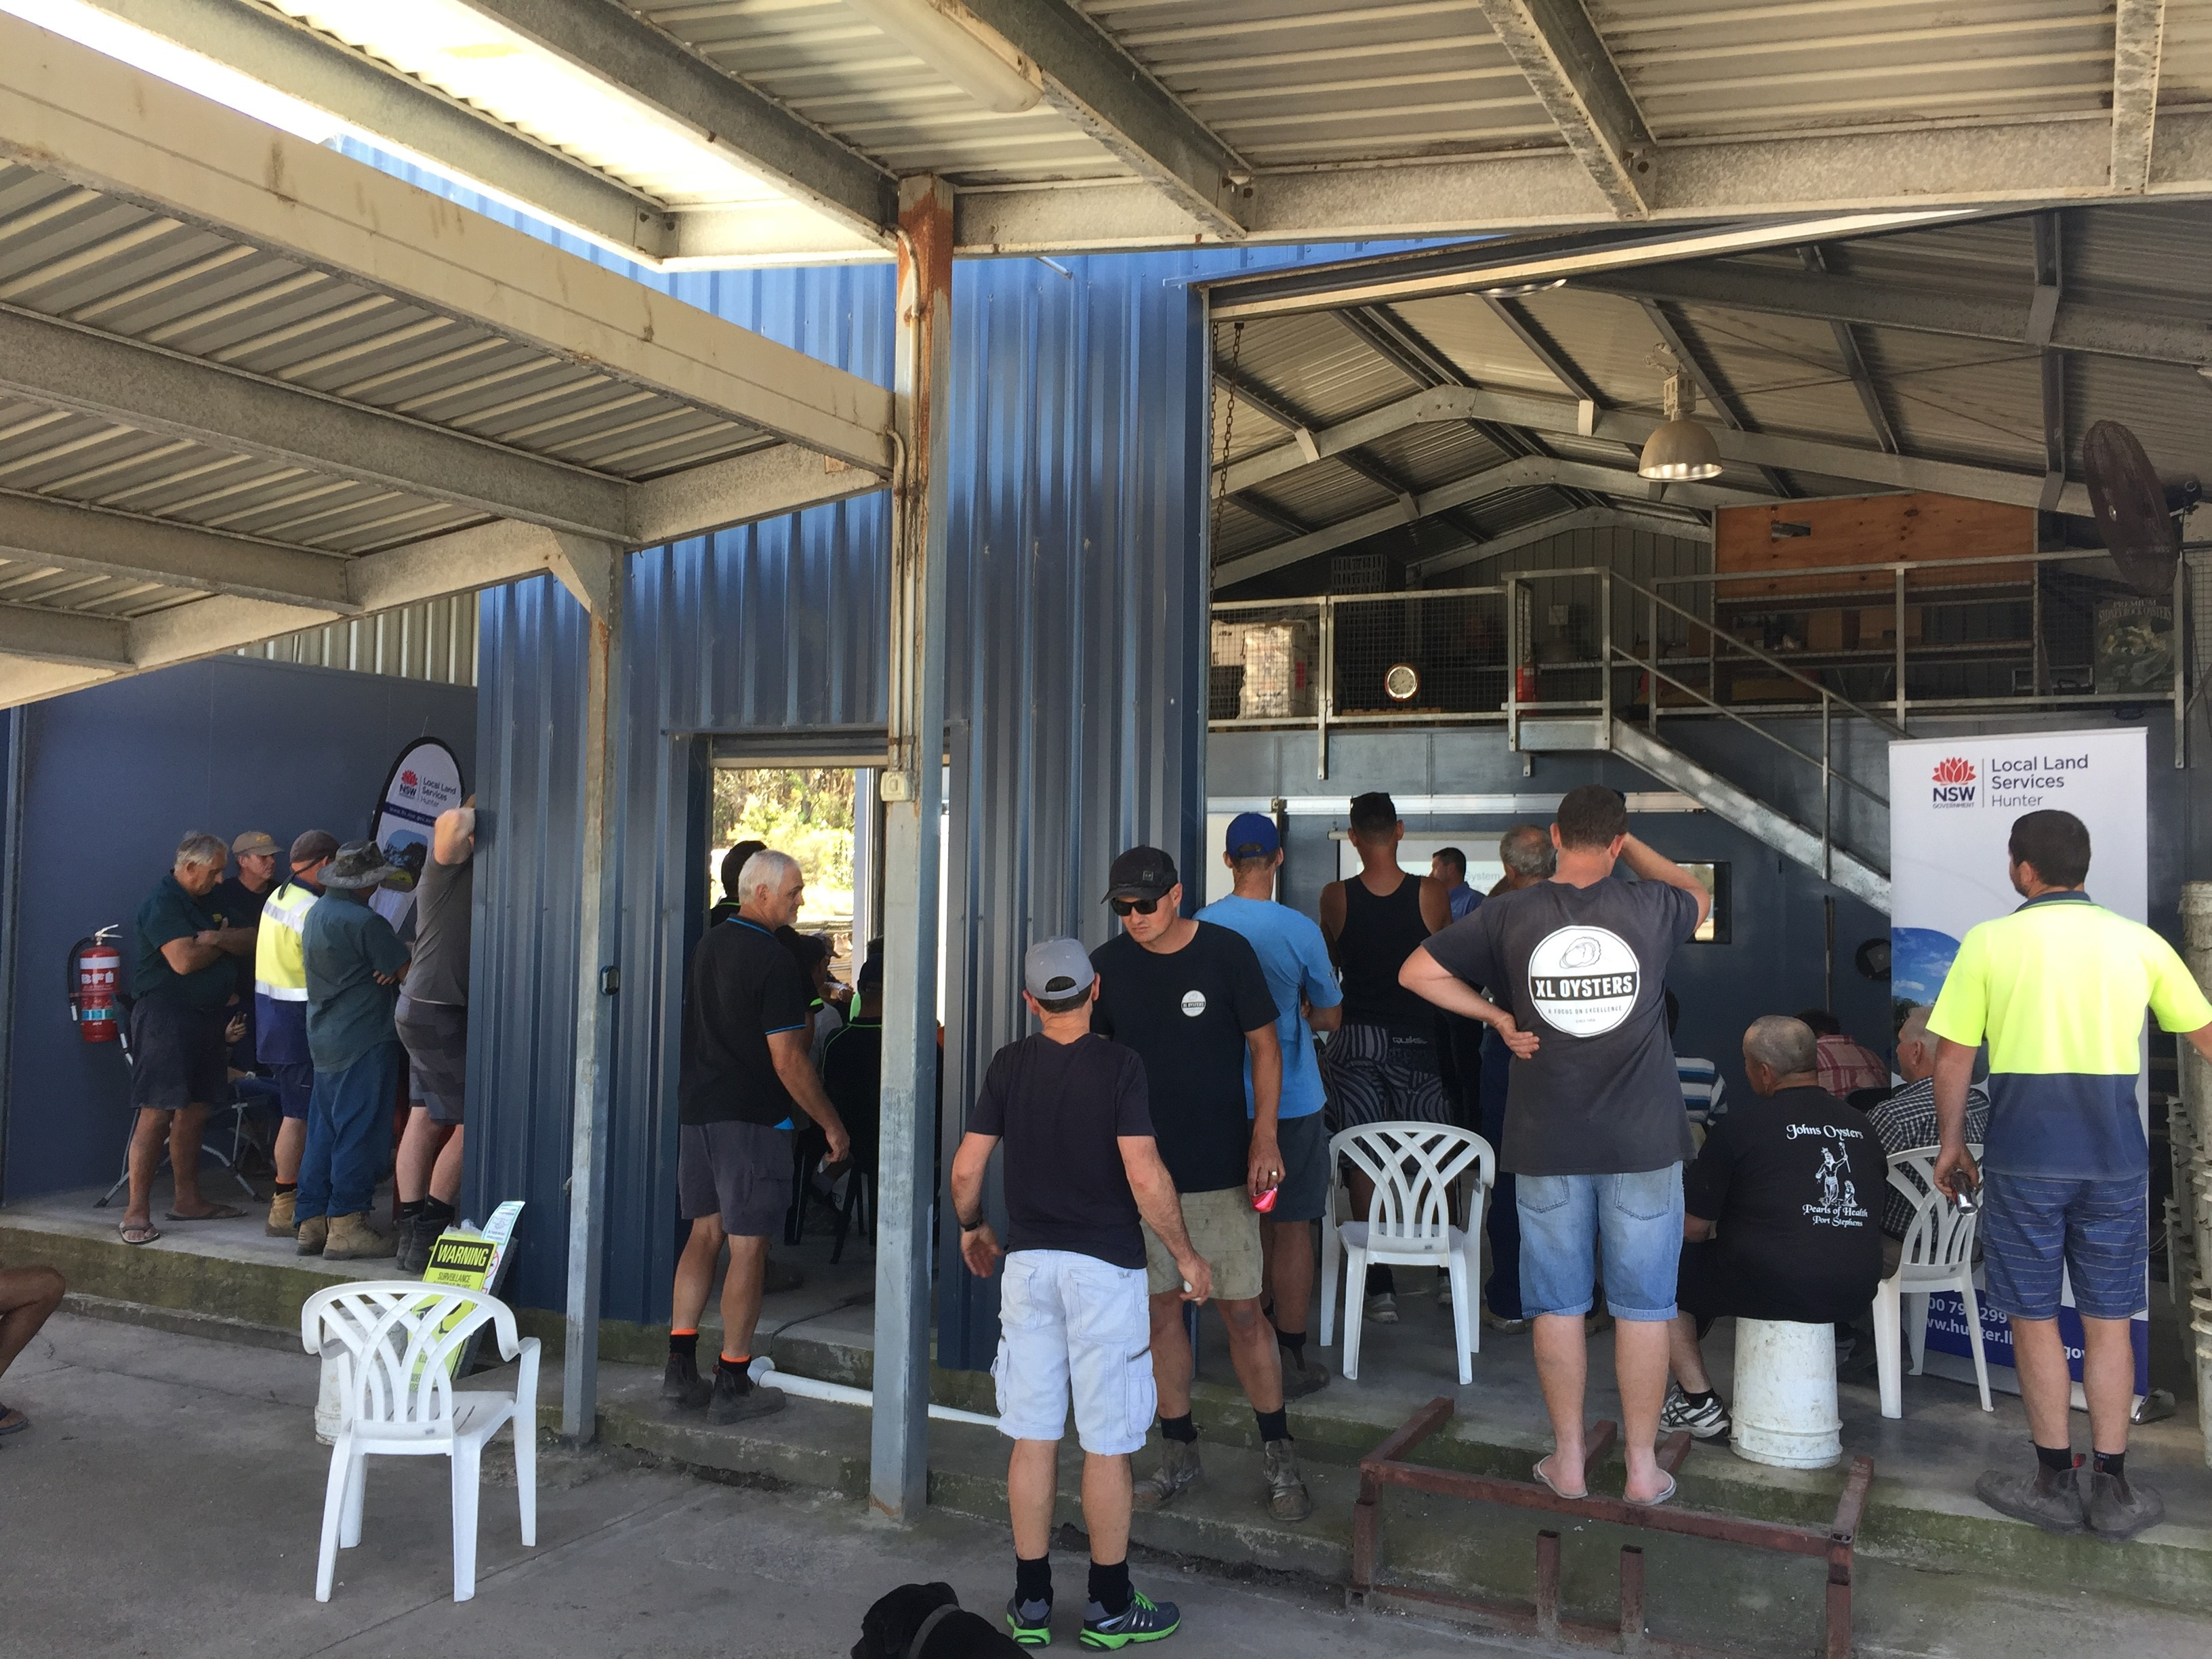 Port Stephens oyster farmer shed day